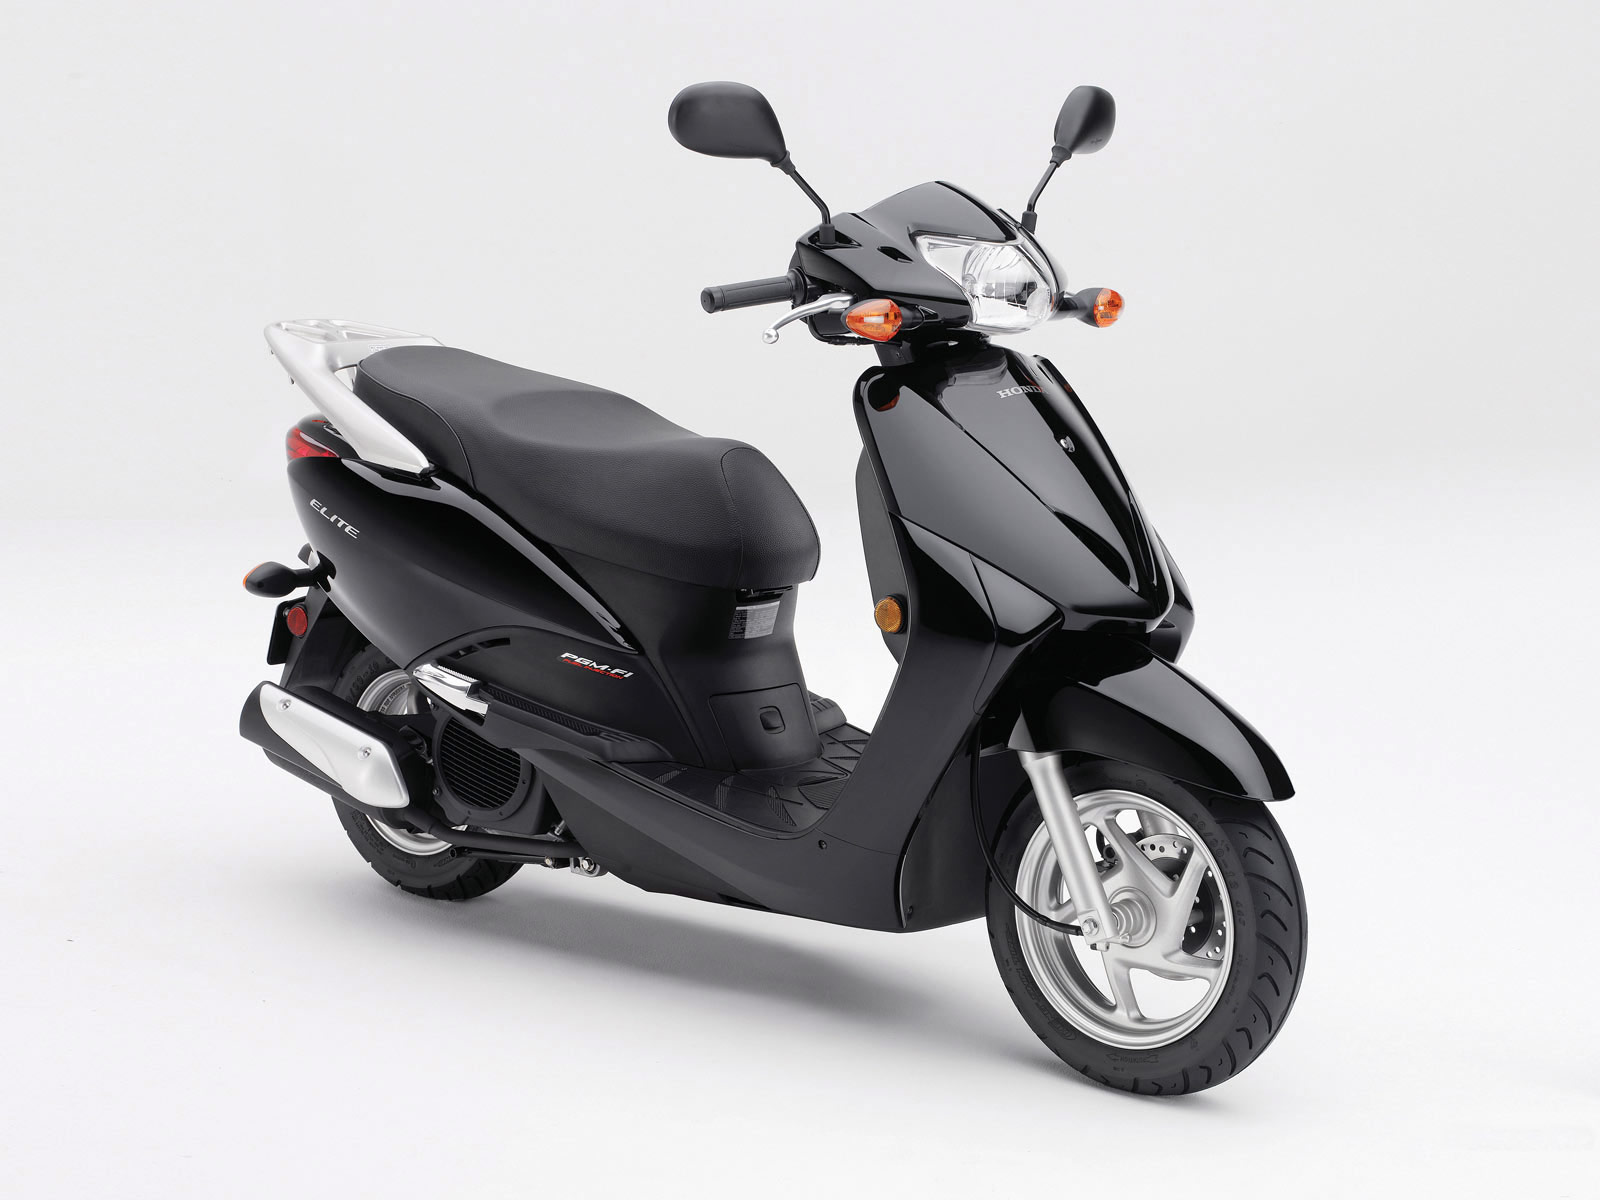 2010 honda elite scooter pictures accident lawyers info. Black Bedroom Furniture Sets. Home Design Ideas